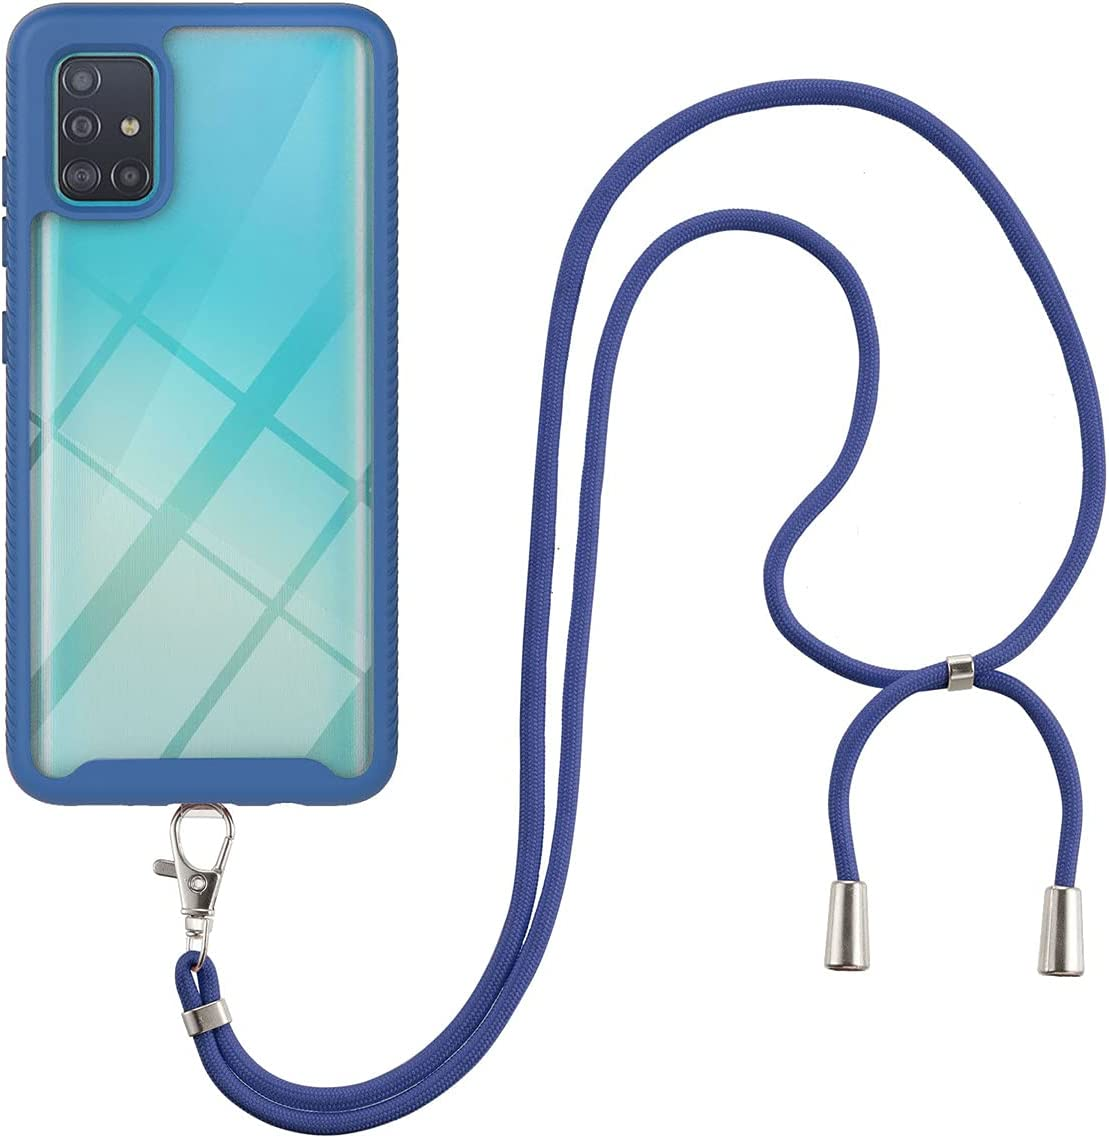 Galaxy A51 Case, Gift_Source Slim Shockproof Crossbody Case 2 in 1 Soft Silicone Bumper and Clear Hard PC Back Cover Shell with Adjustable Lanyard Neck Strap for Samsung Galaxy A51 (6.5